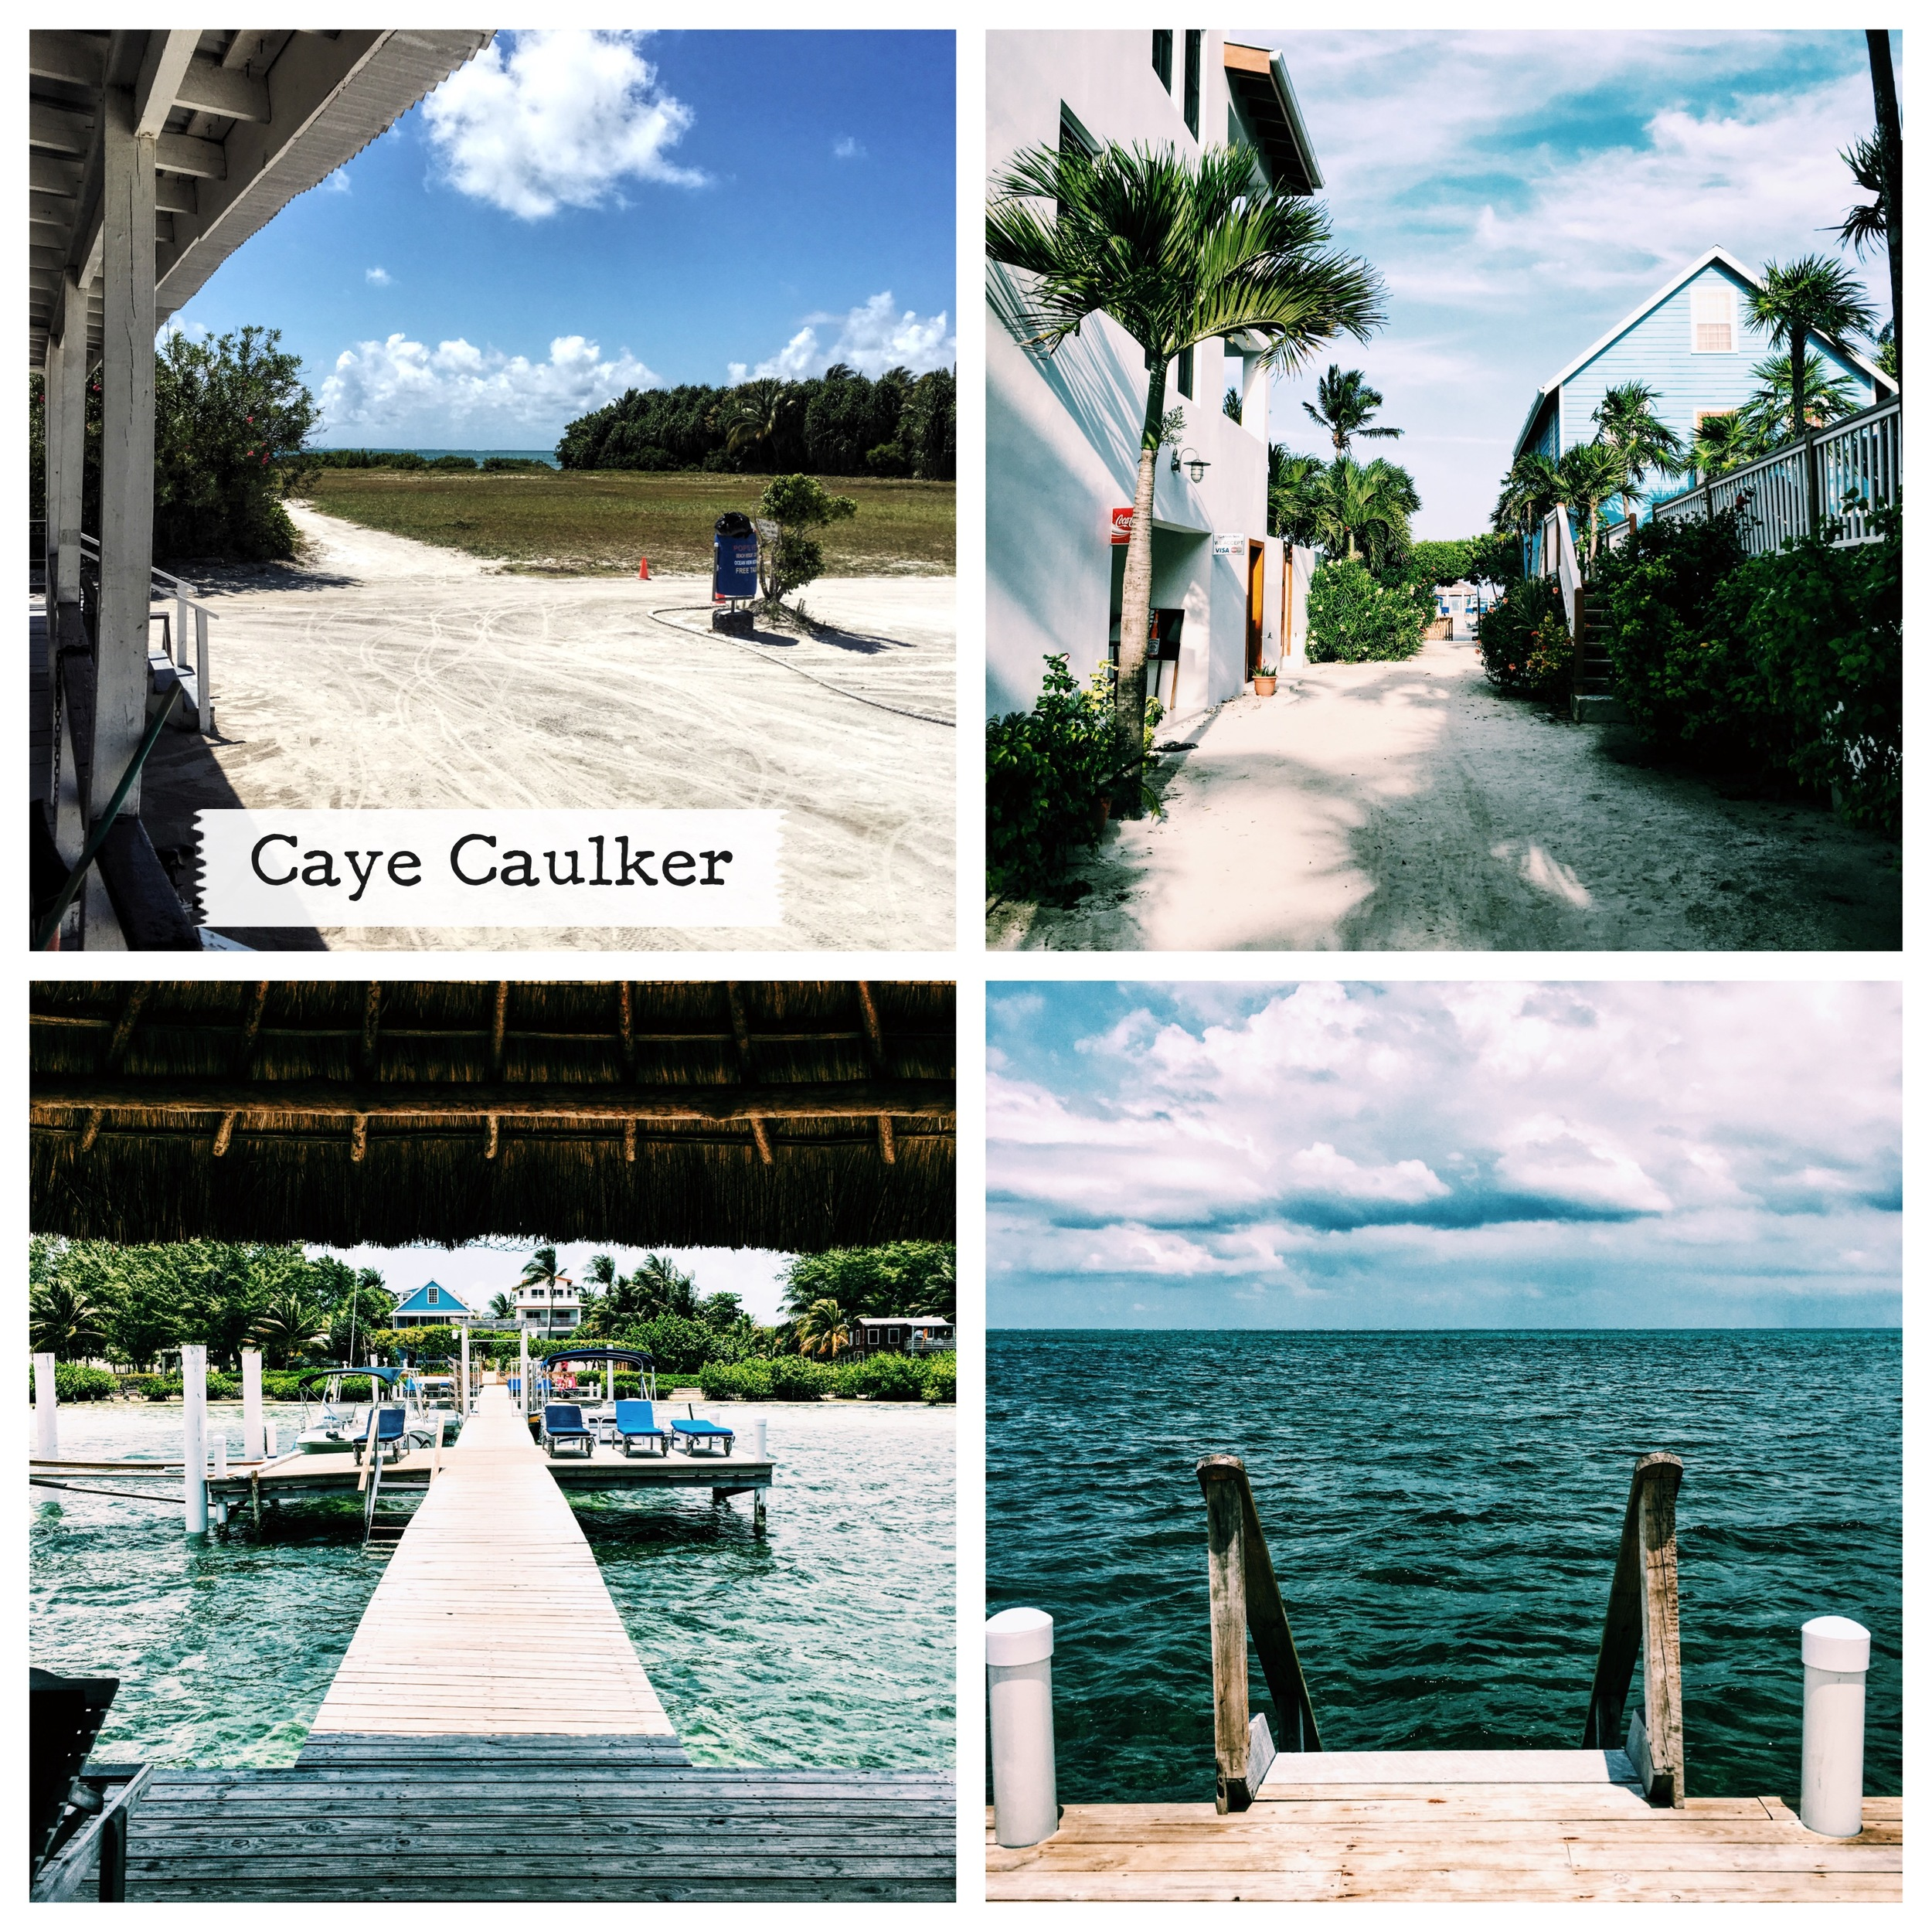 Arriving in Caye Caulker